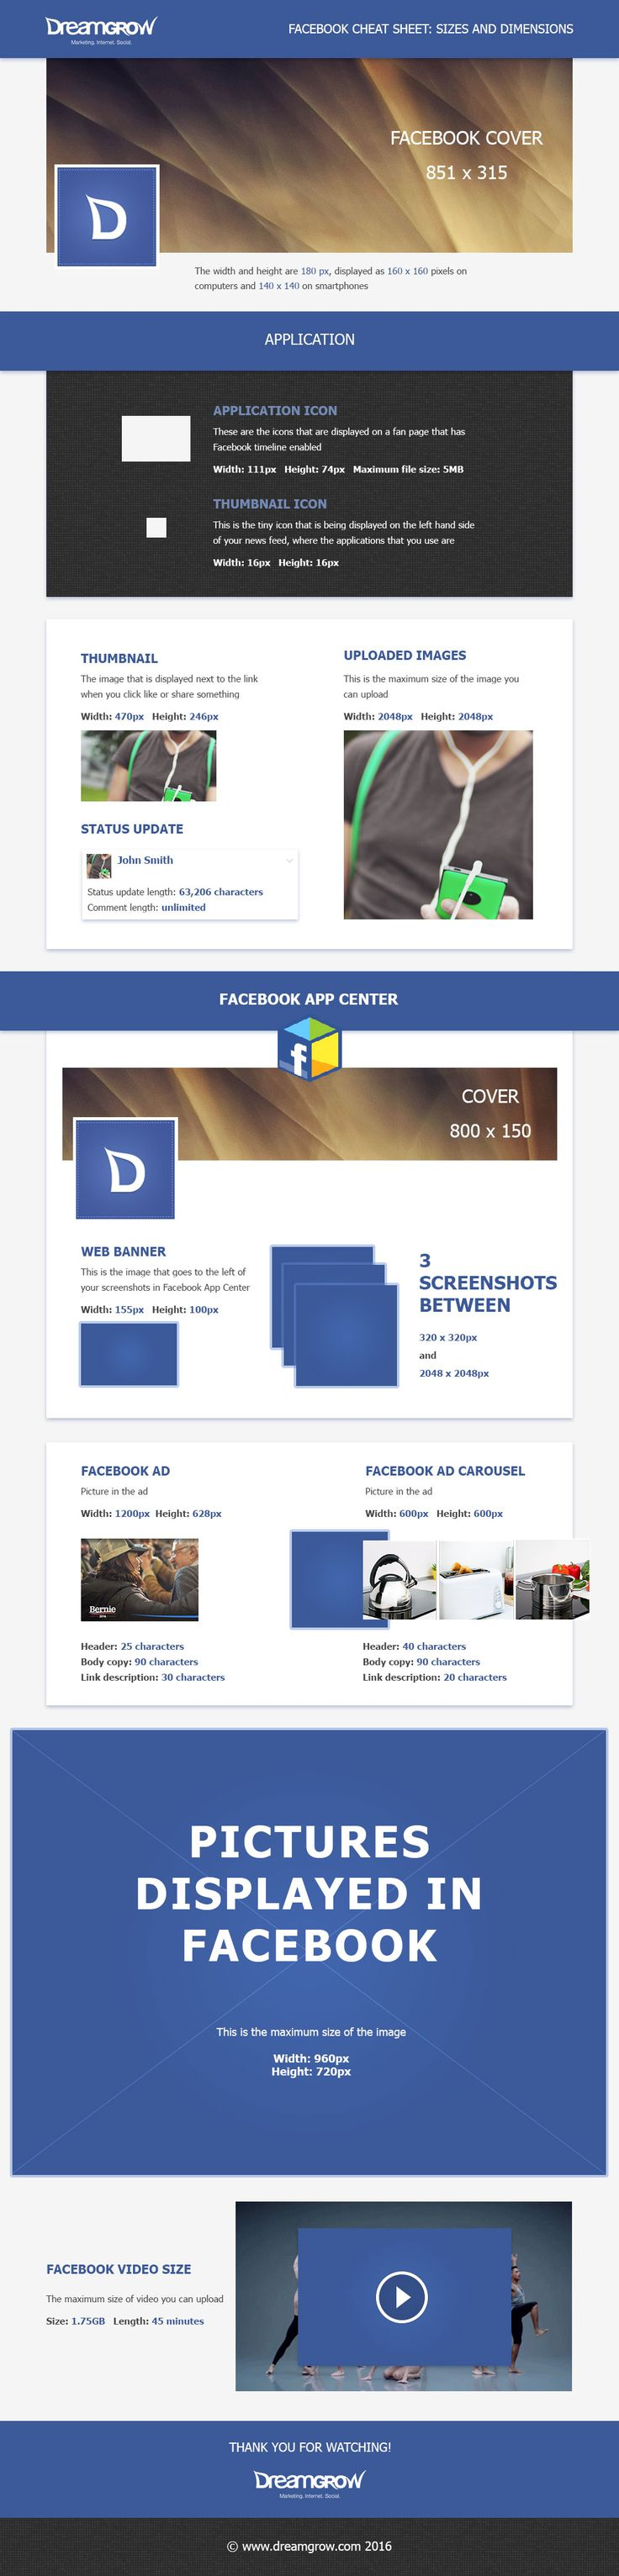 Best 25+ Facebook profile picture size ideas on Pinterest ...